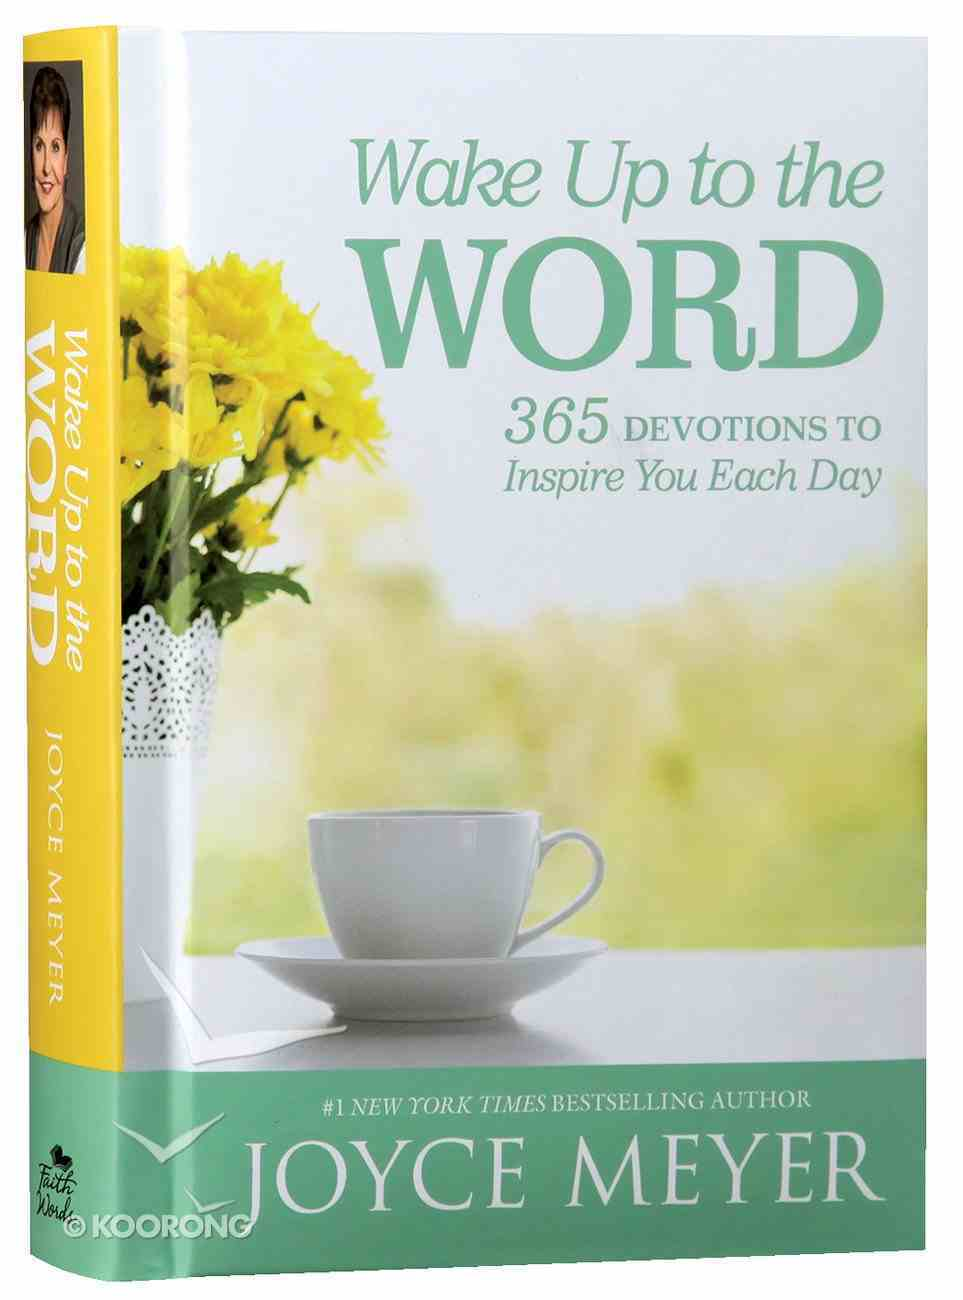 Wake Up to the Word: 365 Devotions to Inspire You Each Day Hardback